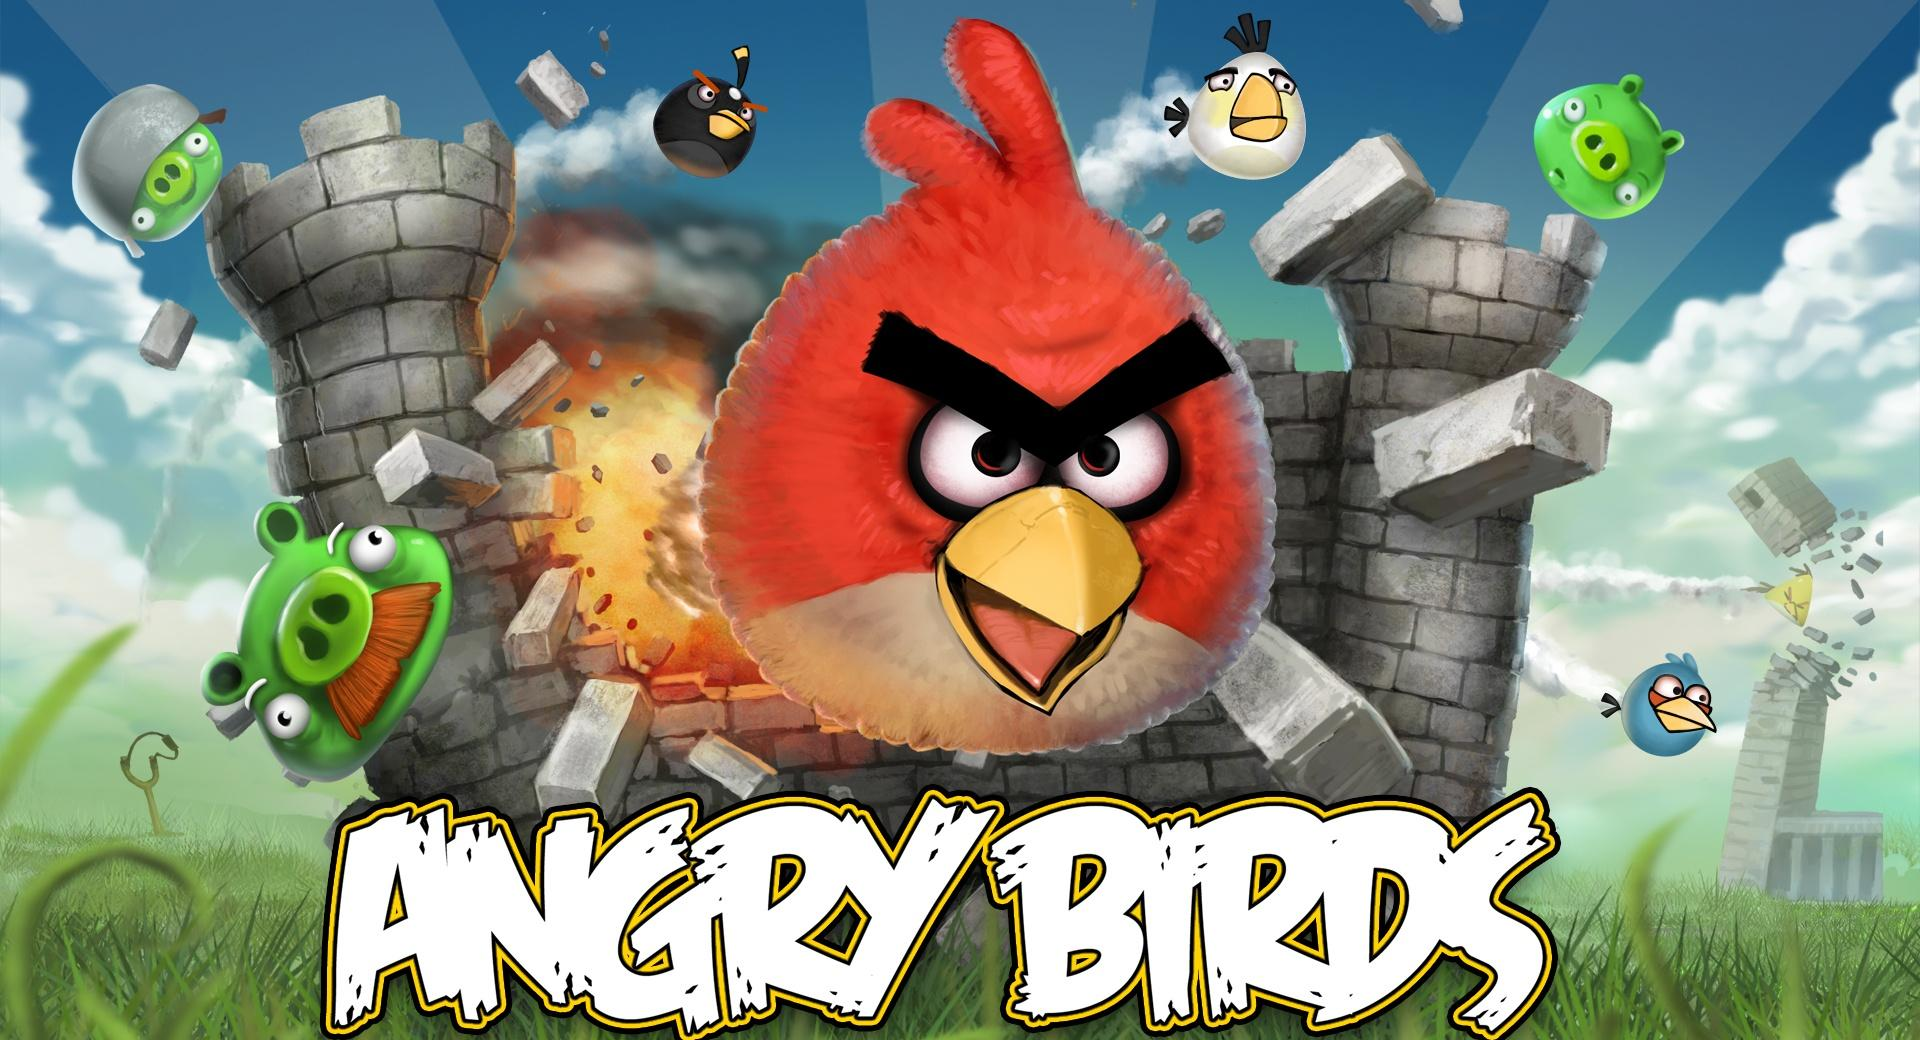 Angry Birds Game wallpapers HD quality